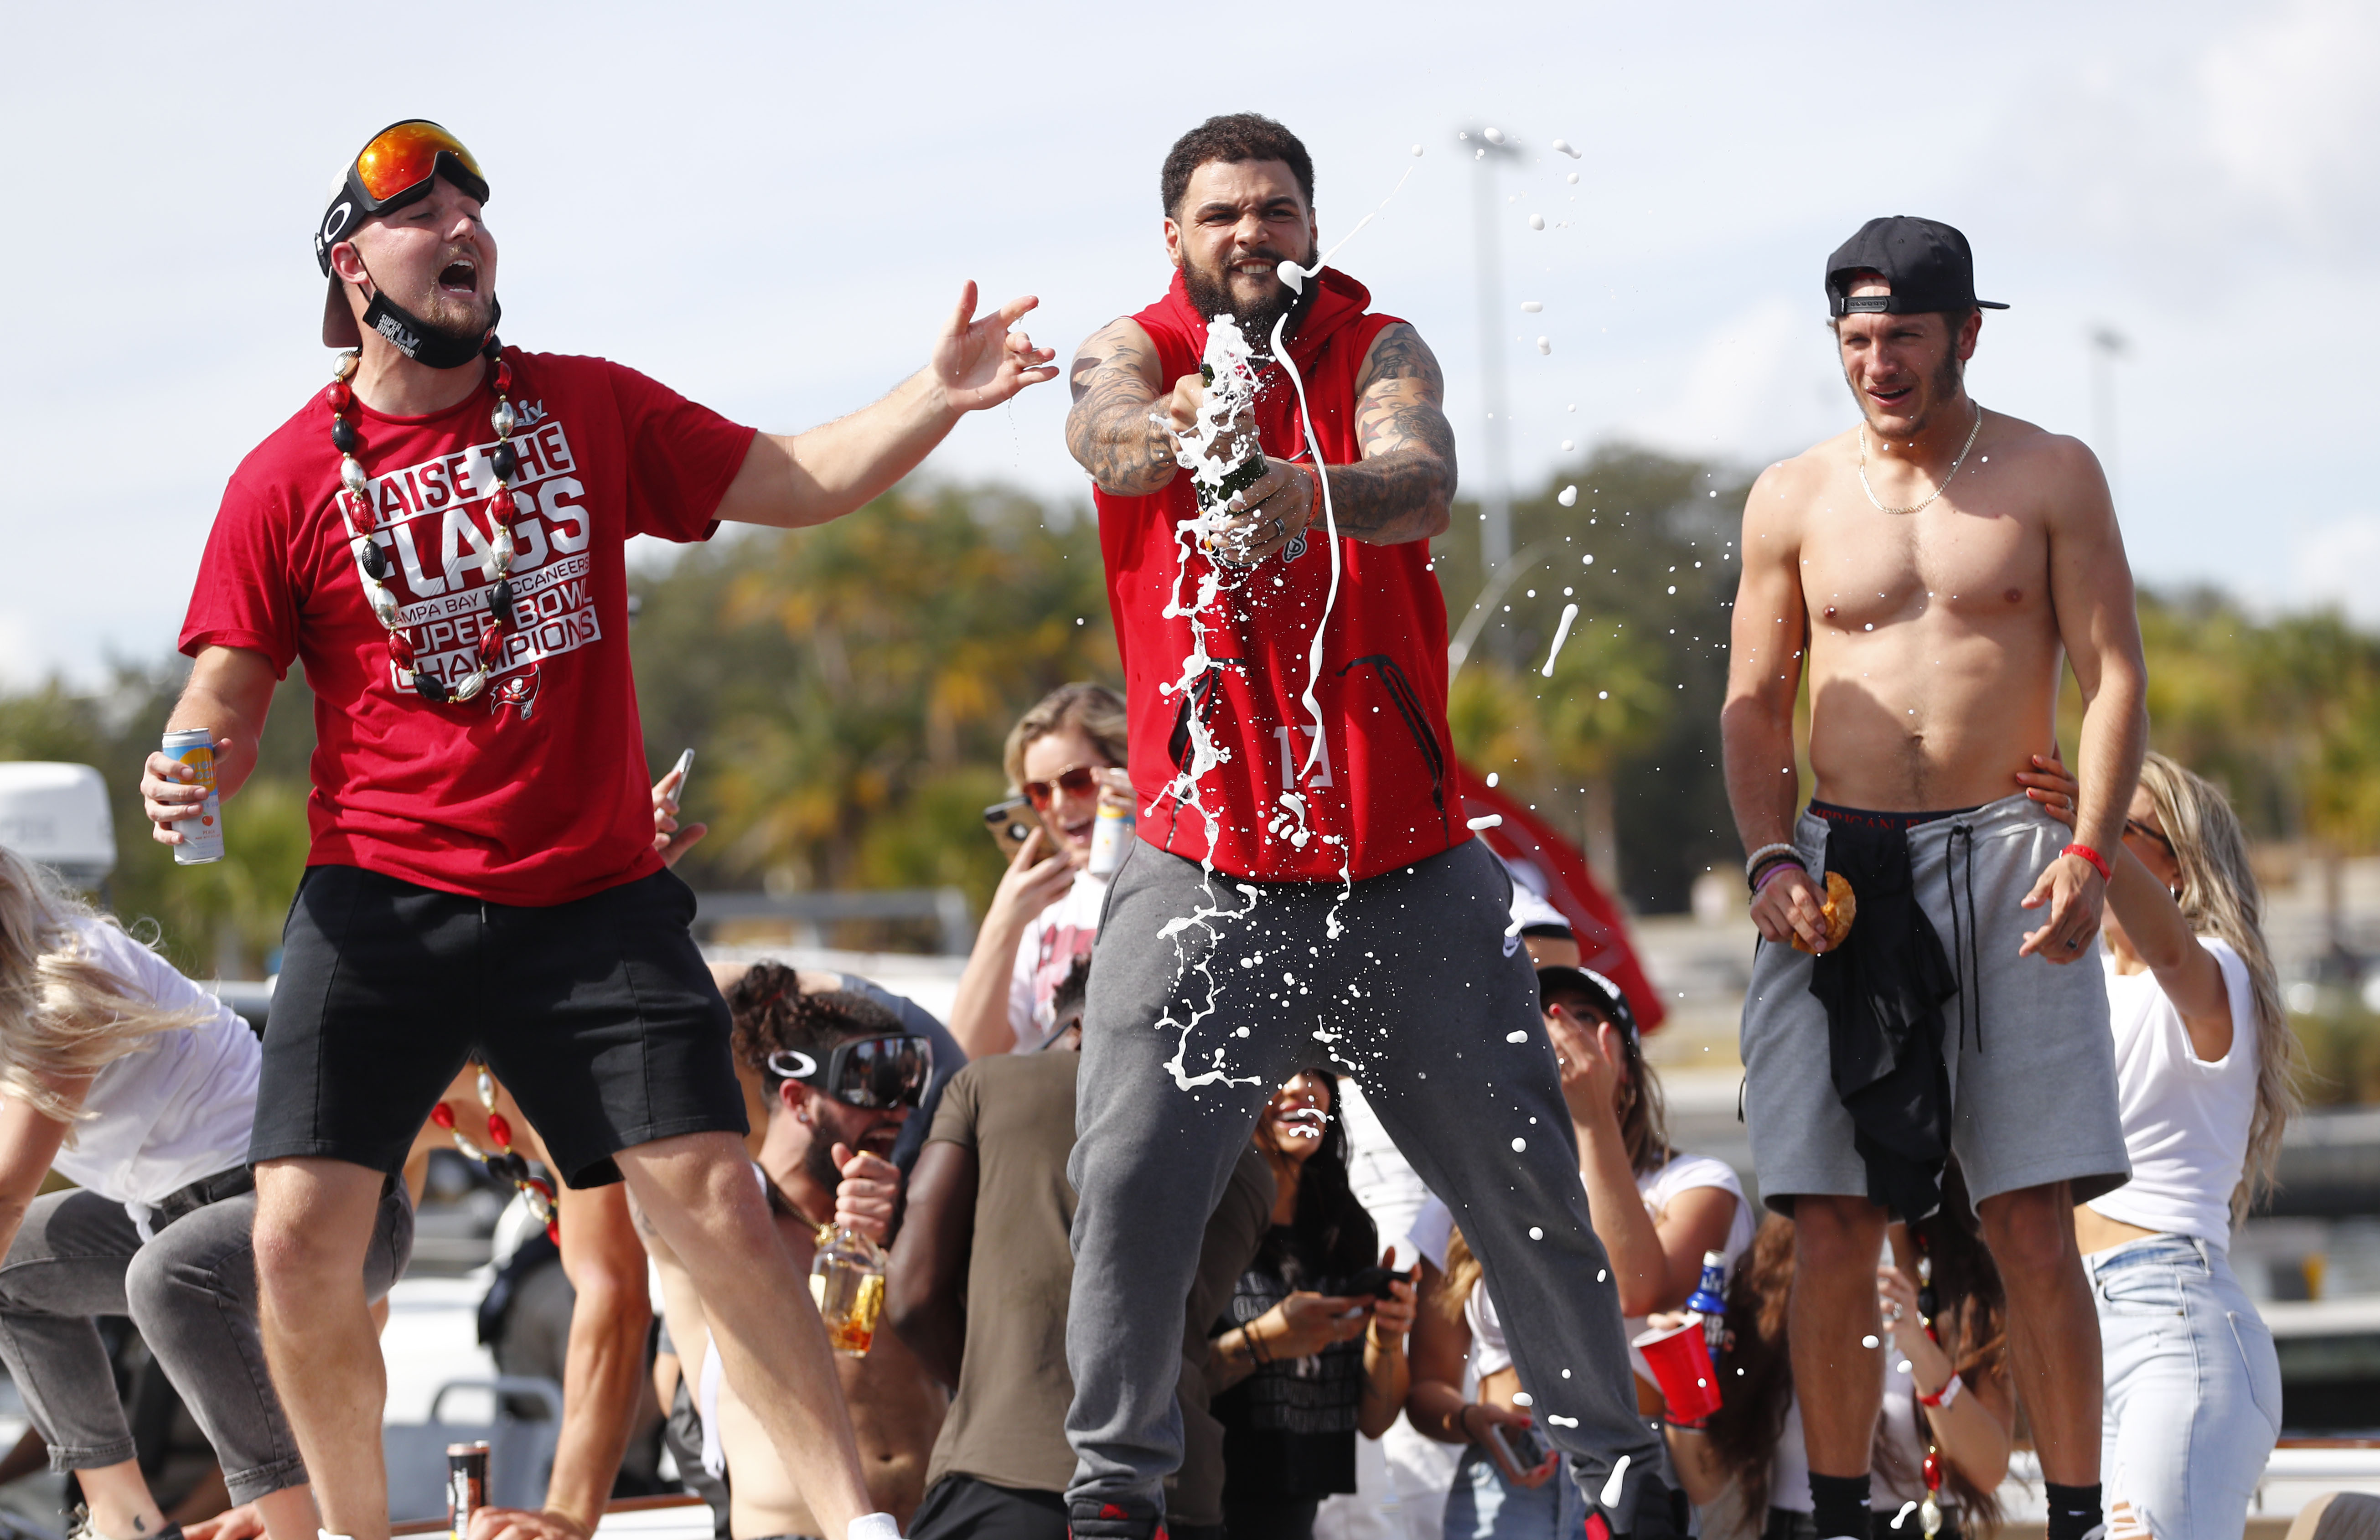 NFL: Super Bowl LV-Champion Tampa Bay Buccanners Boat Parade